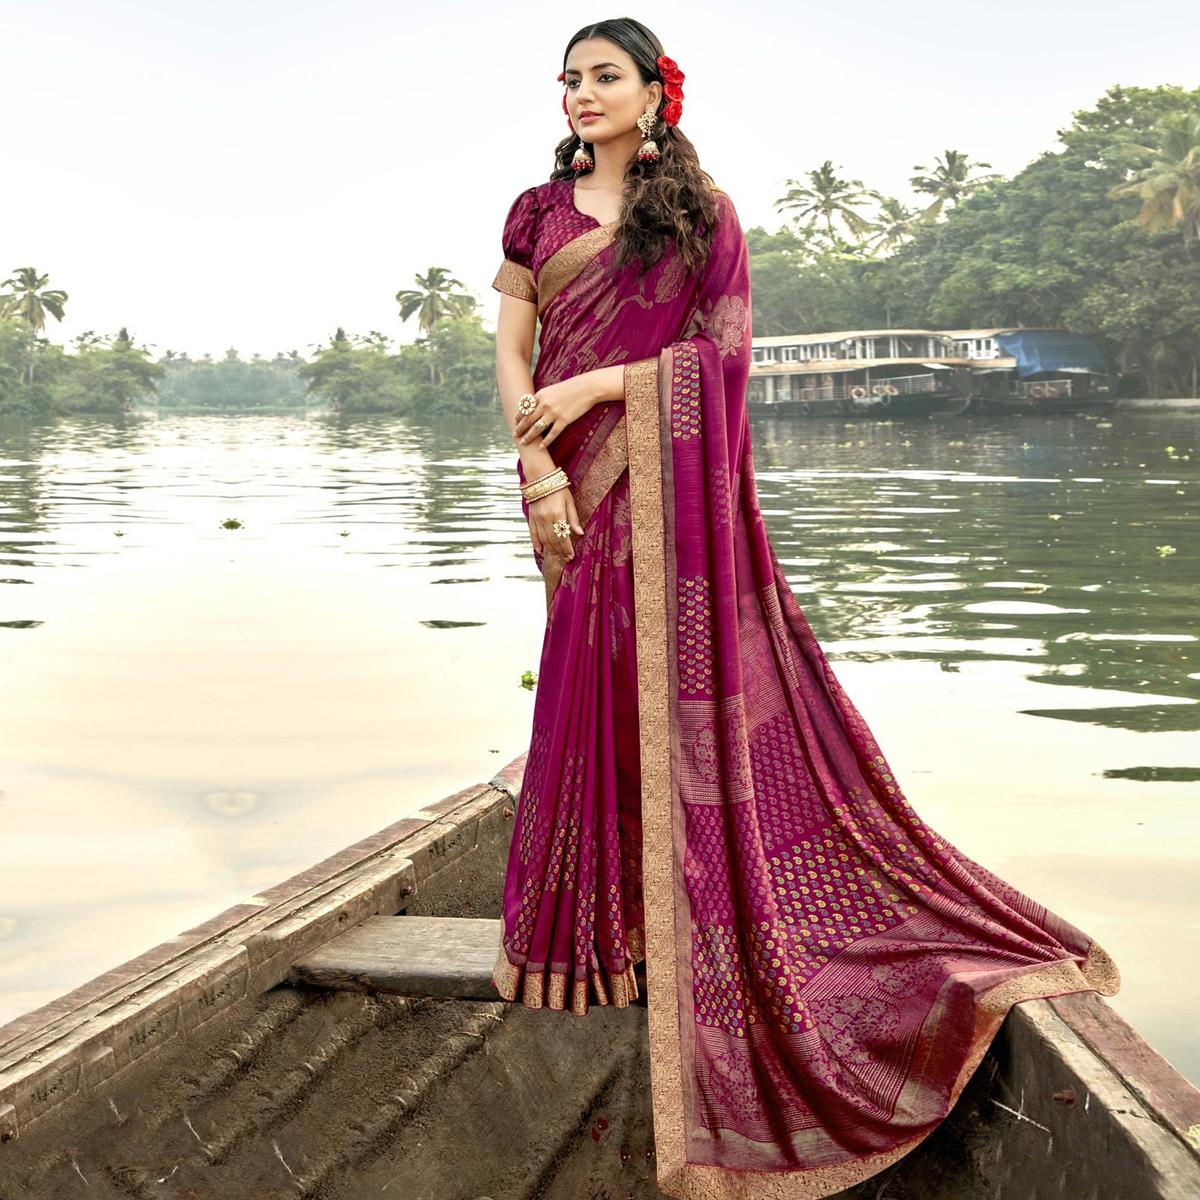 Triveni Magenta Colored Chanderi Silk Party Wear Floral Foil Printed Saree With Blouse Piece